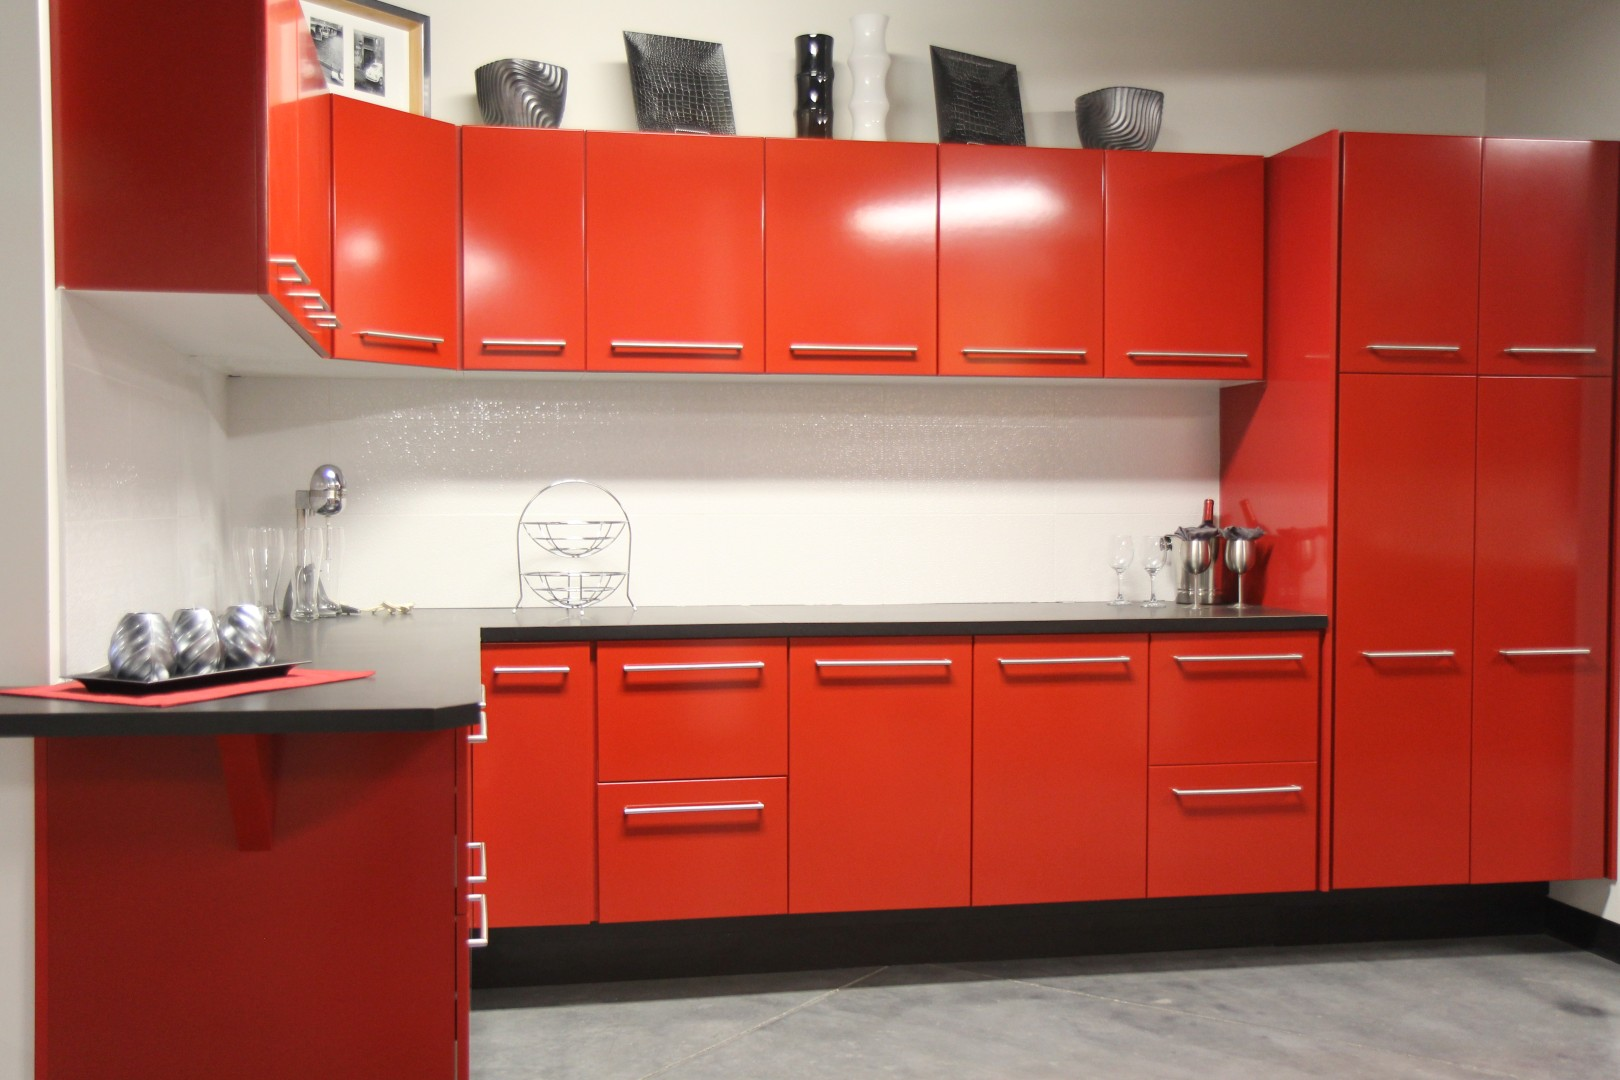 How To Choose The Right Stylish Red Kitchen Cabinets For Any Styles Of The Kitchen You Want To Build Artmakehome